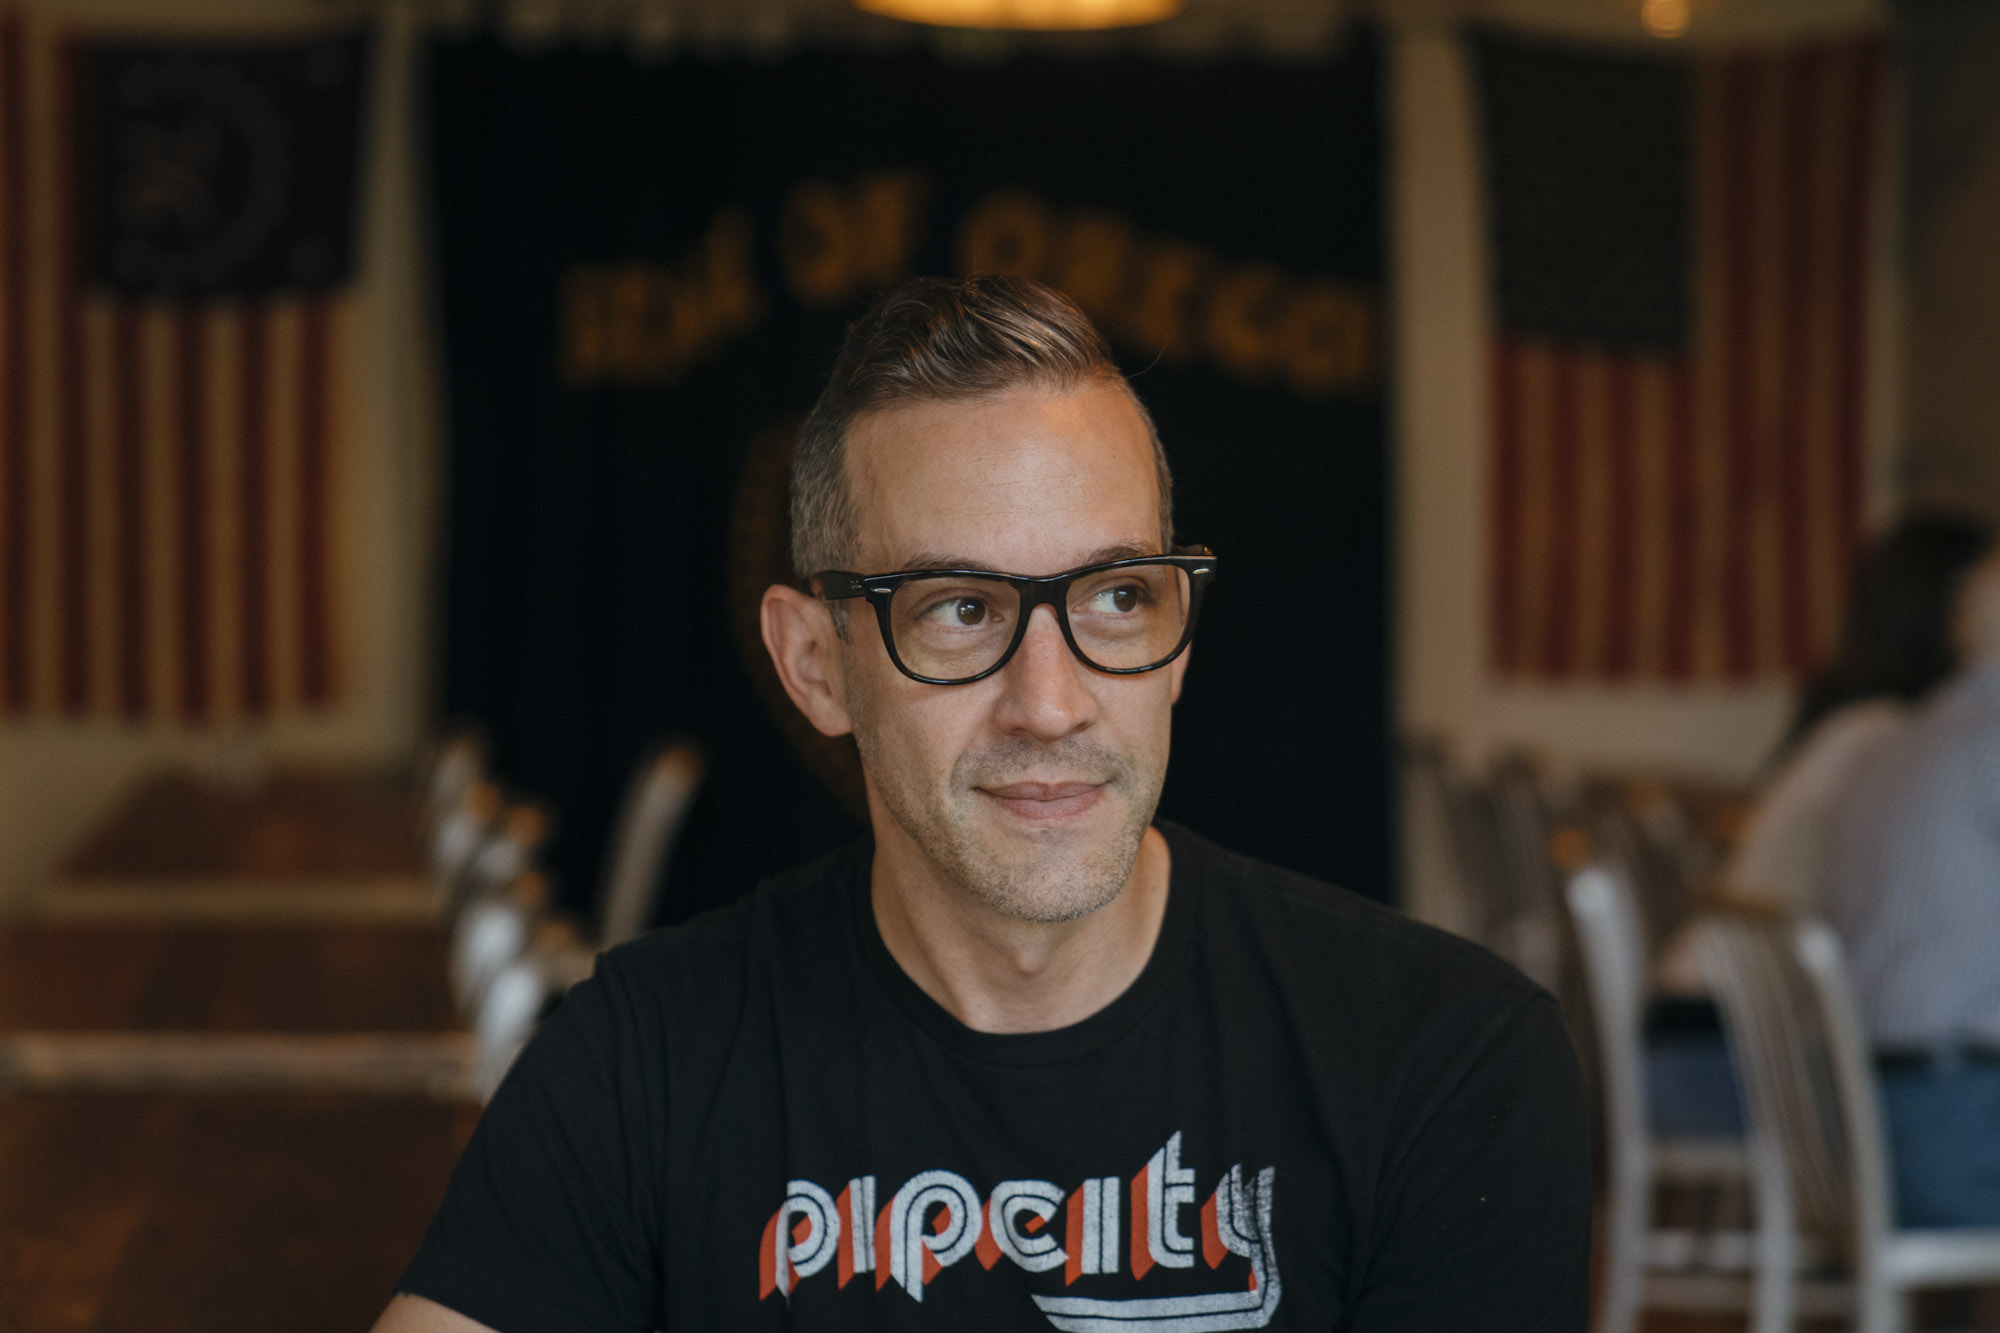 Nate Snell-co-owner of Pip's